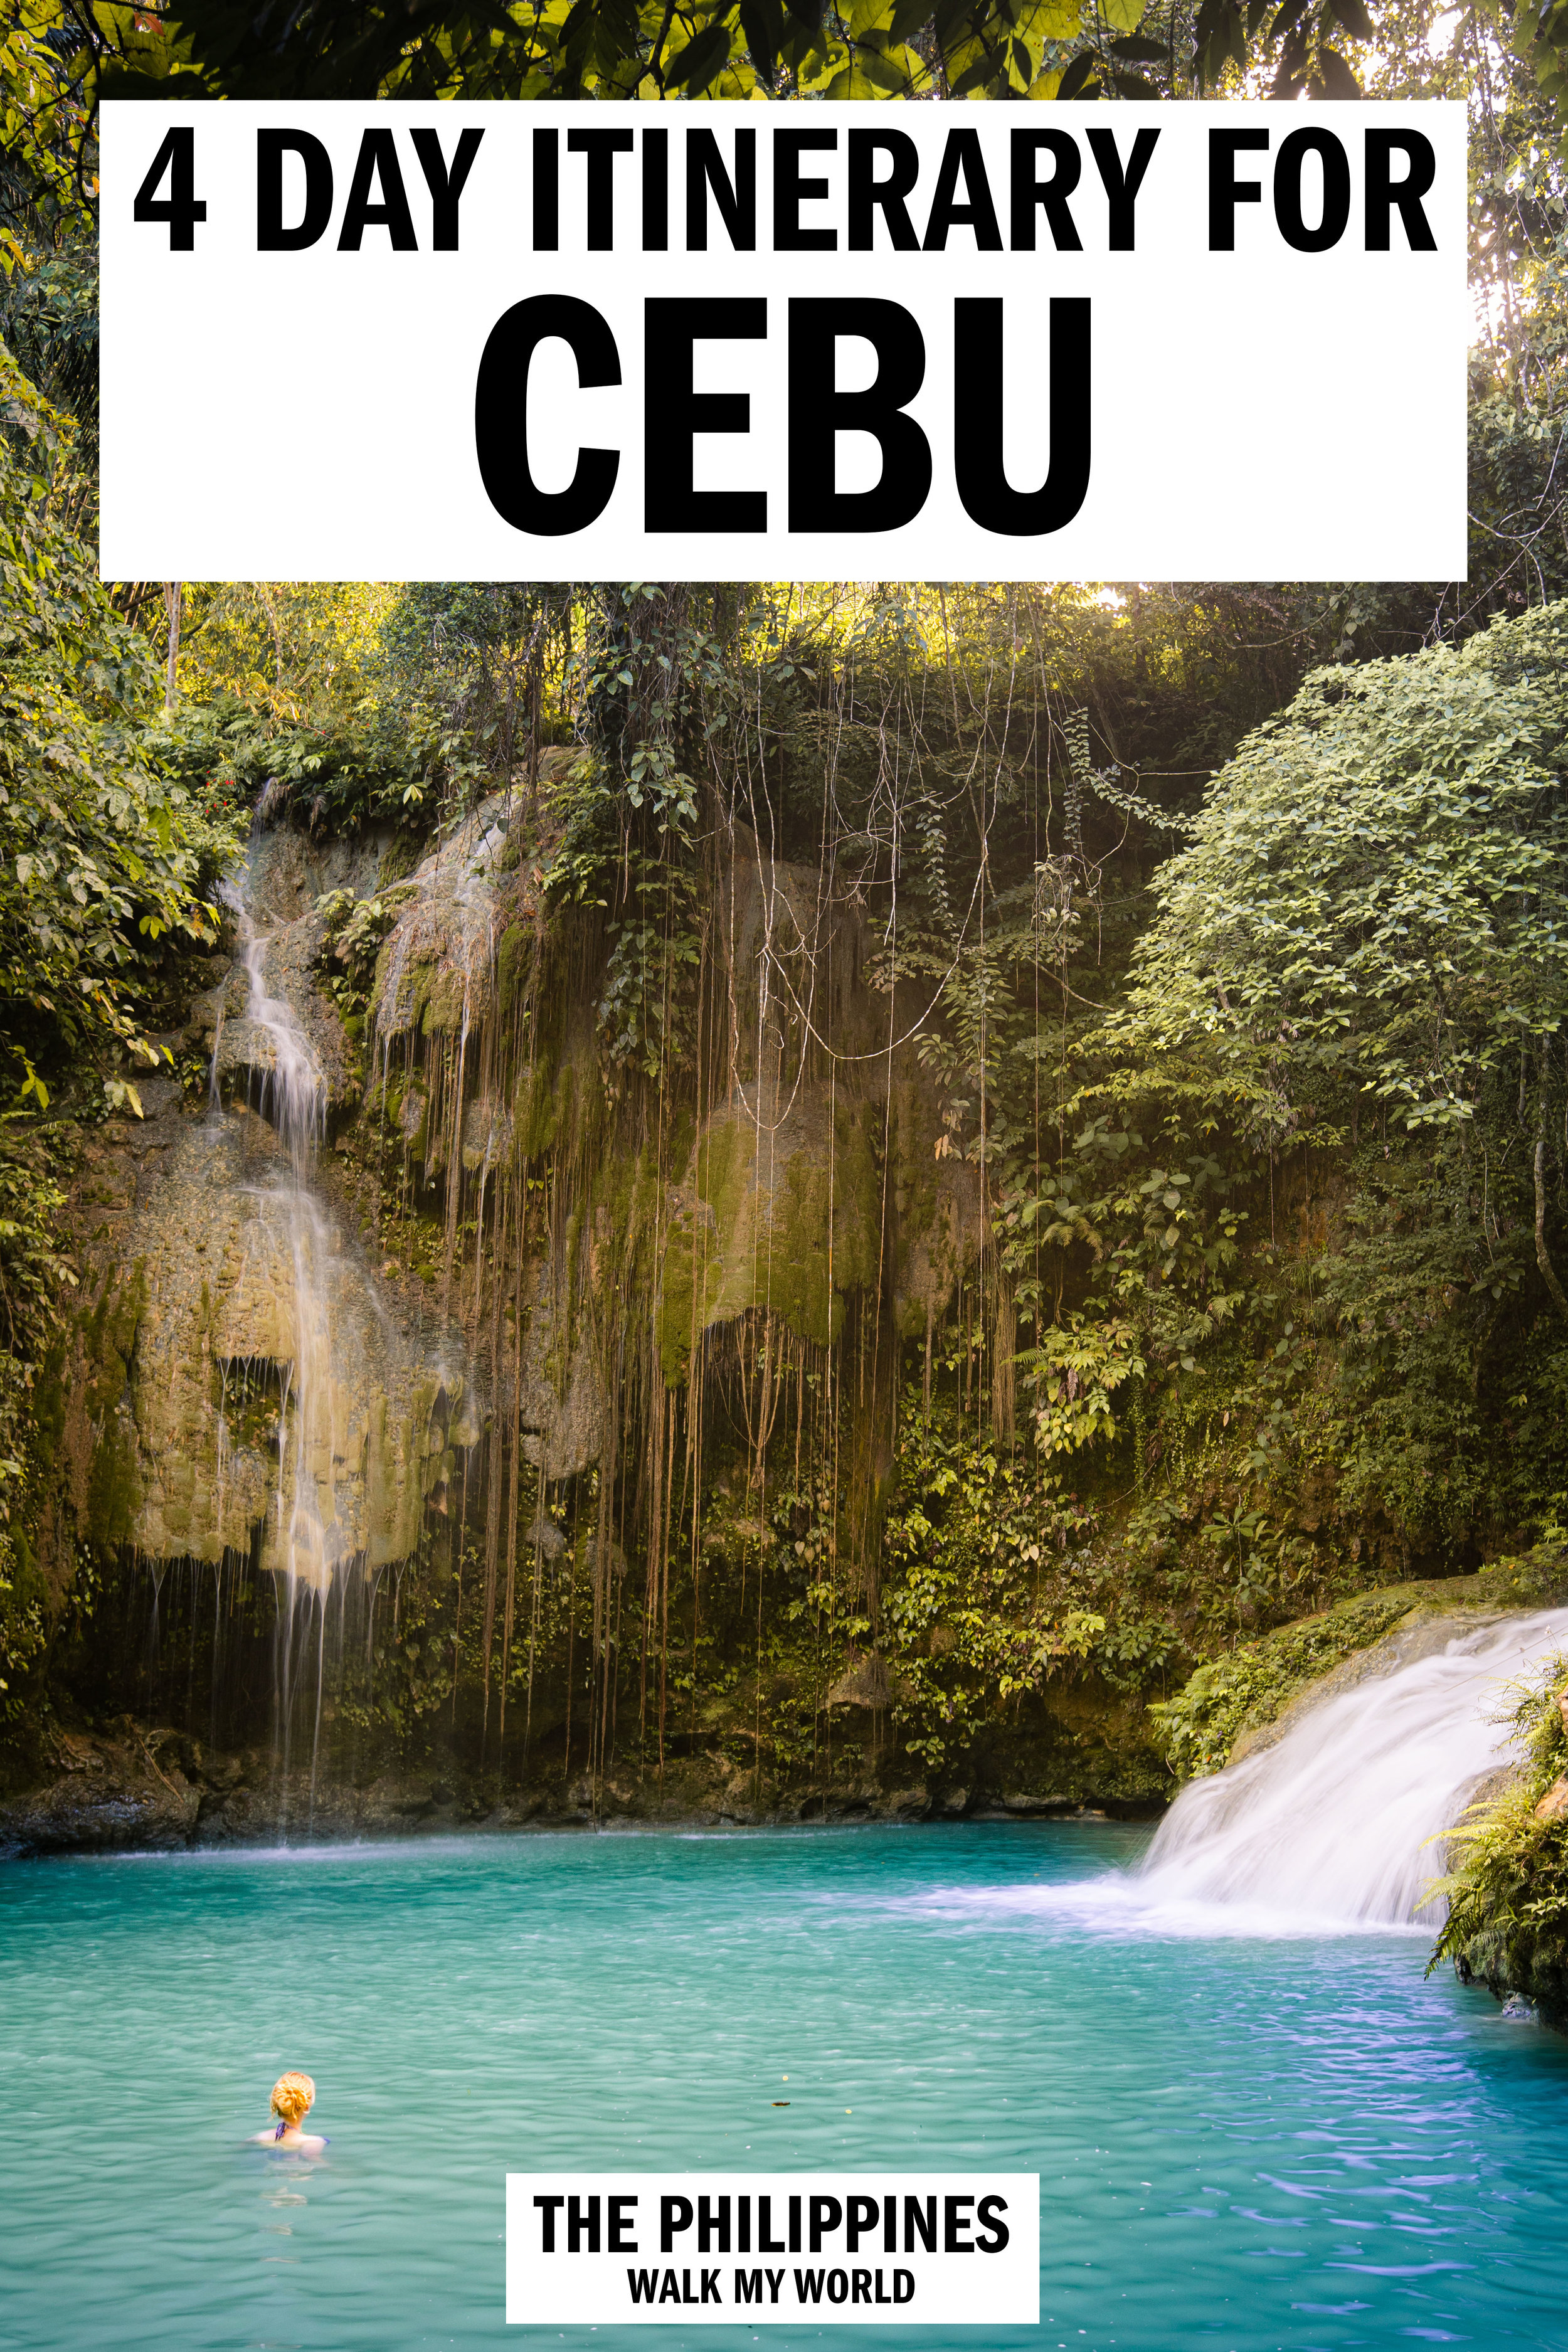 The ultimate itinerary for an adventurous trip to Cebu, Philippines! We'll take you through the places you must visit as well as top tips for avoiding the crowds, where to stay and all you need for the trip of a lifetime! #Cebu #Philippines